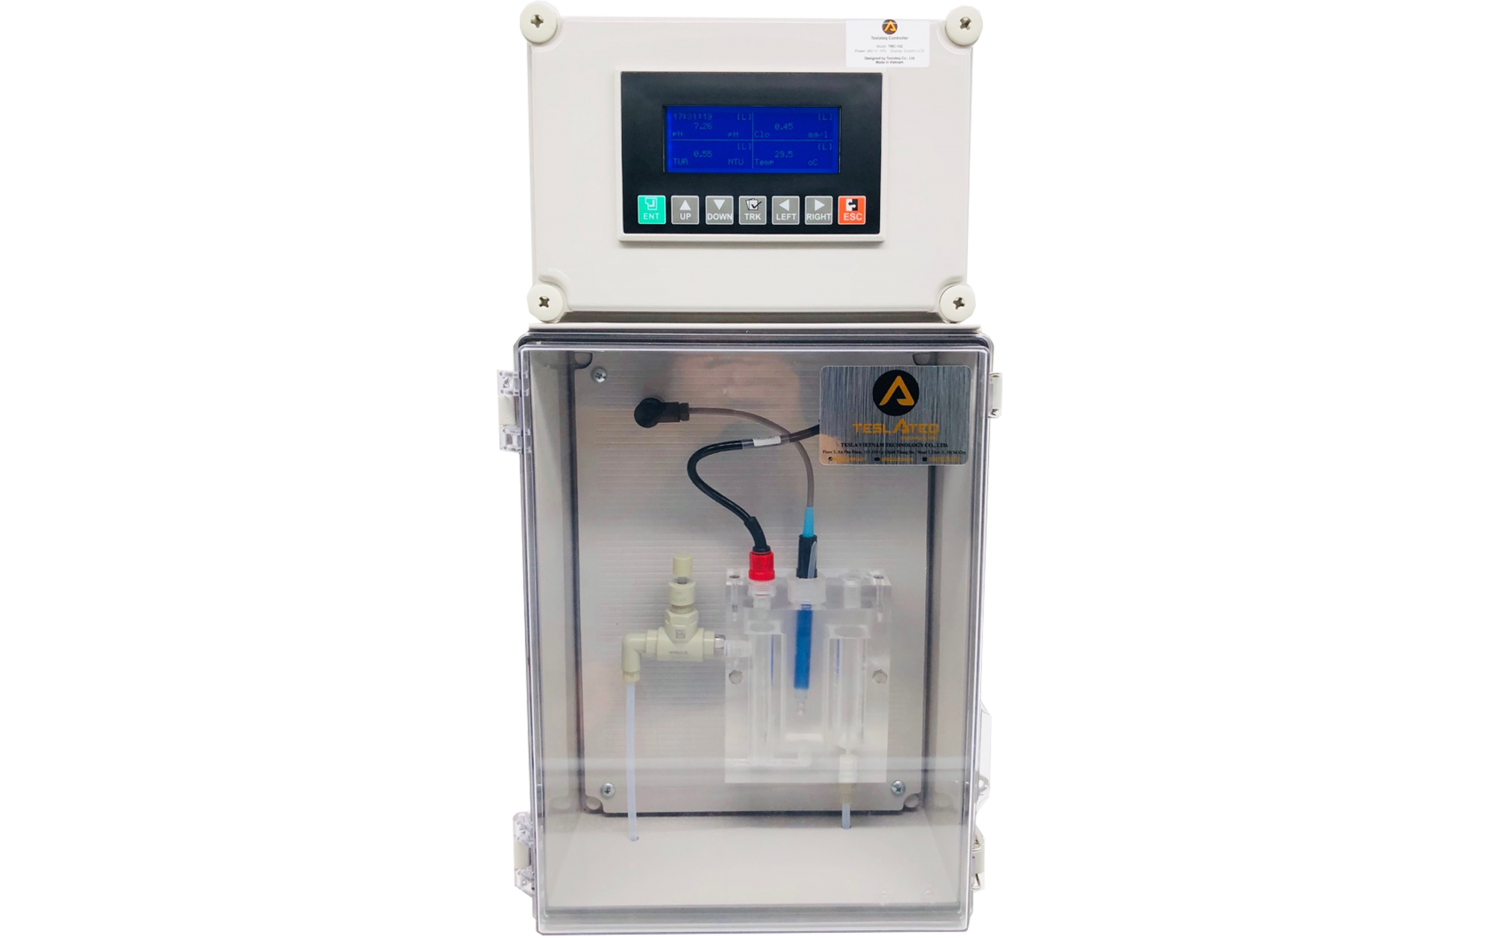 Online Ozone Analyzer Model TMC-102 + TCO101